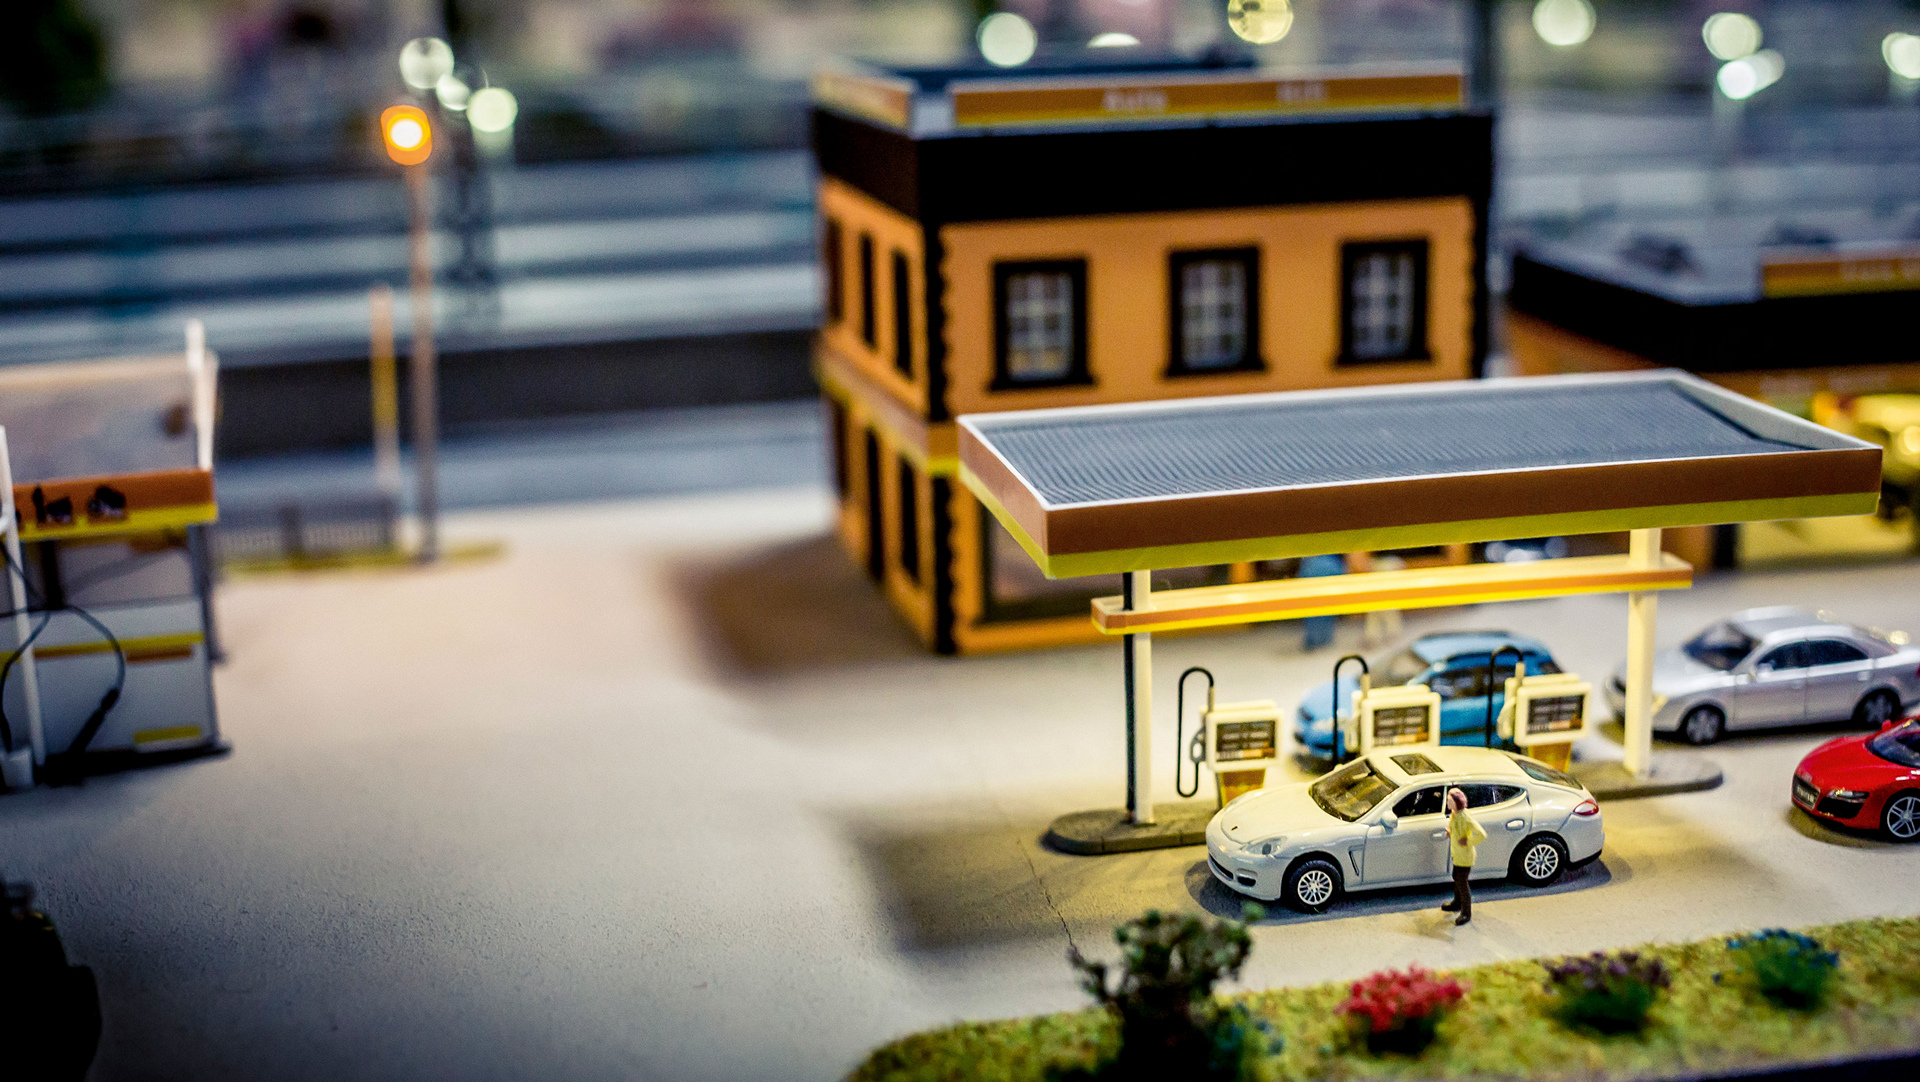 Miniature: Panamera, gas station, TraumWerk © Dr. Ing. h.c. F. Porsche AG